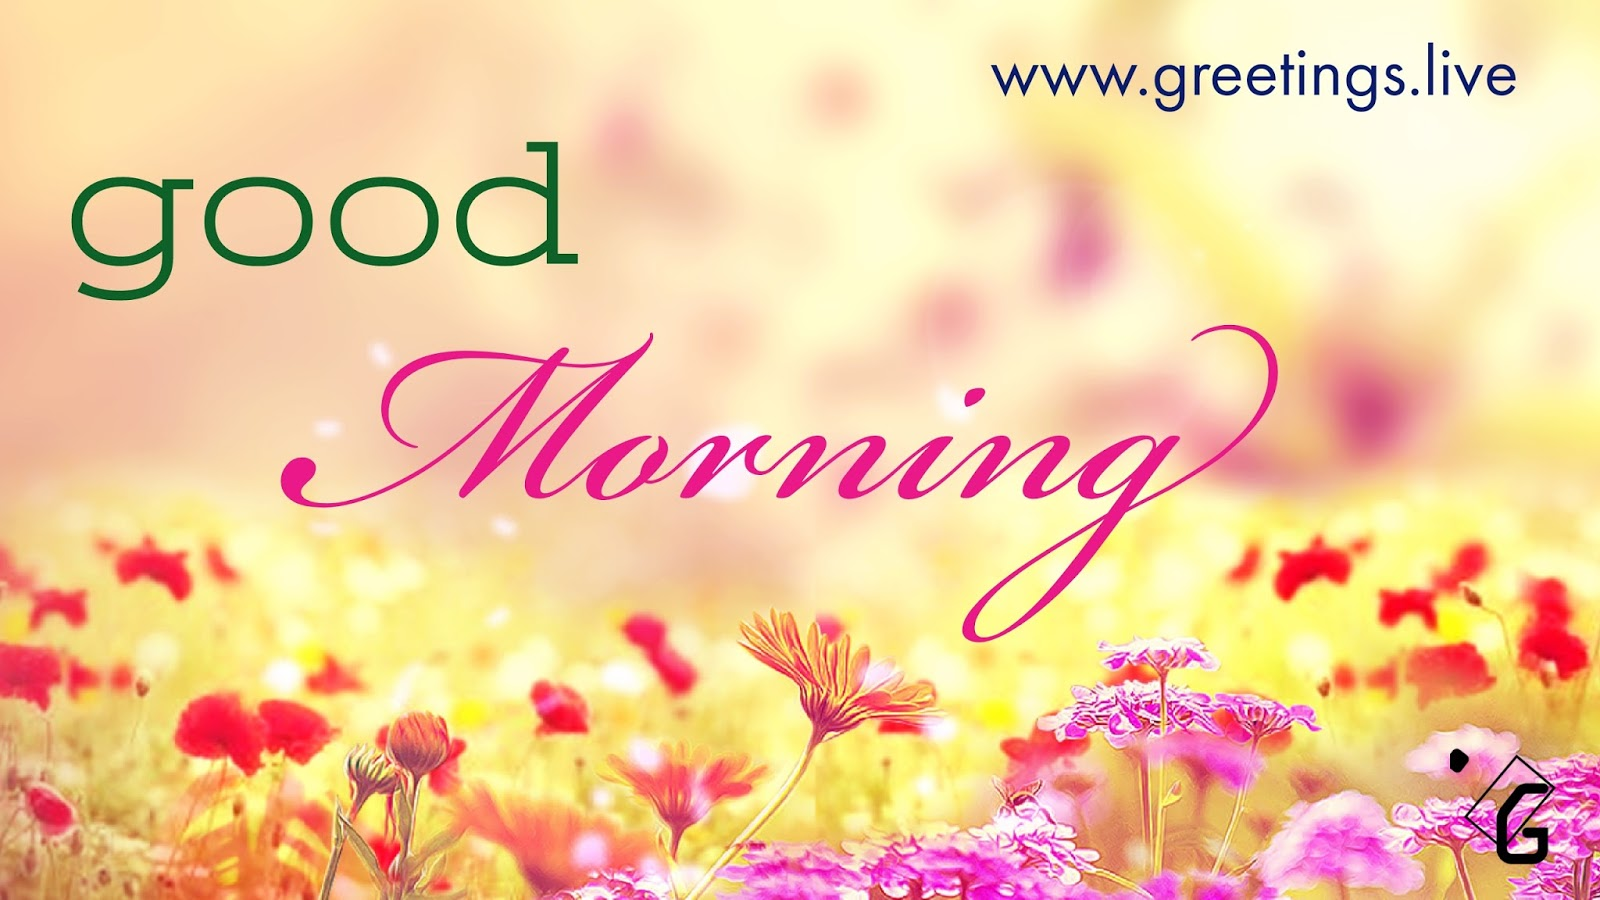 Greetingsve hd images love smile birthday wishes free download beautiful flowers bg early morning greetings kristyandbryce Image collections